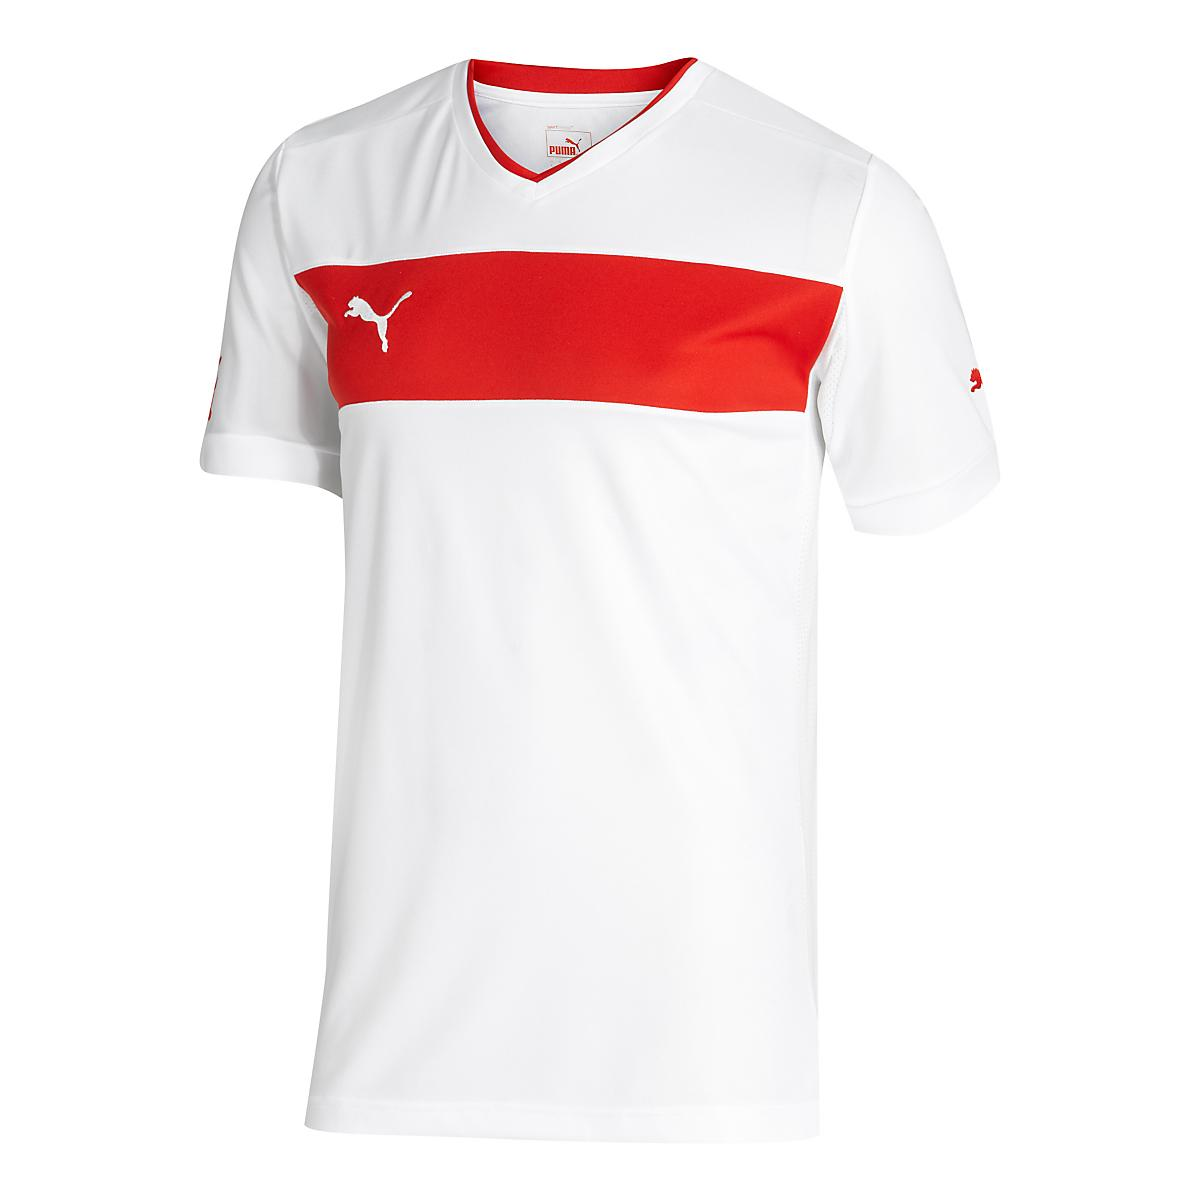 Men's Puma�PowerCat 3.12 Shirt